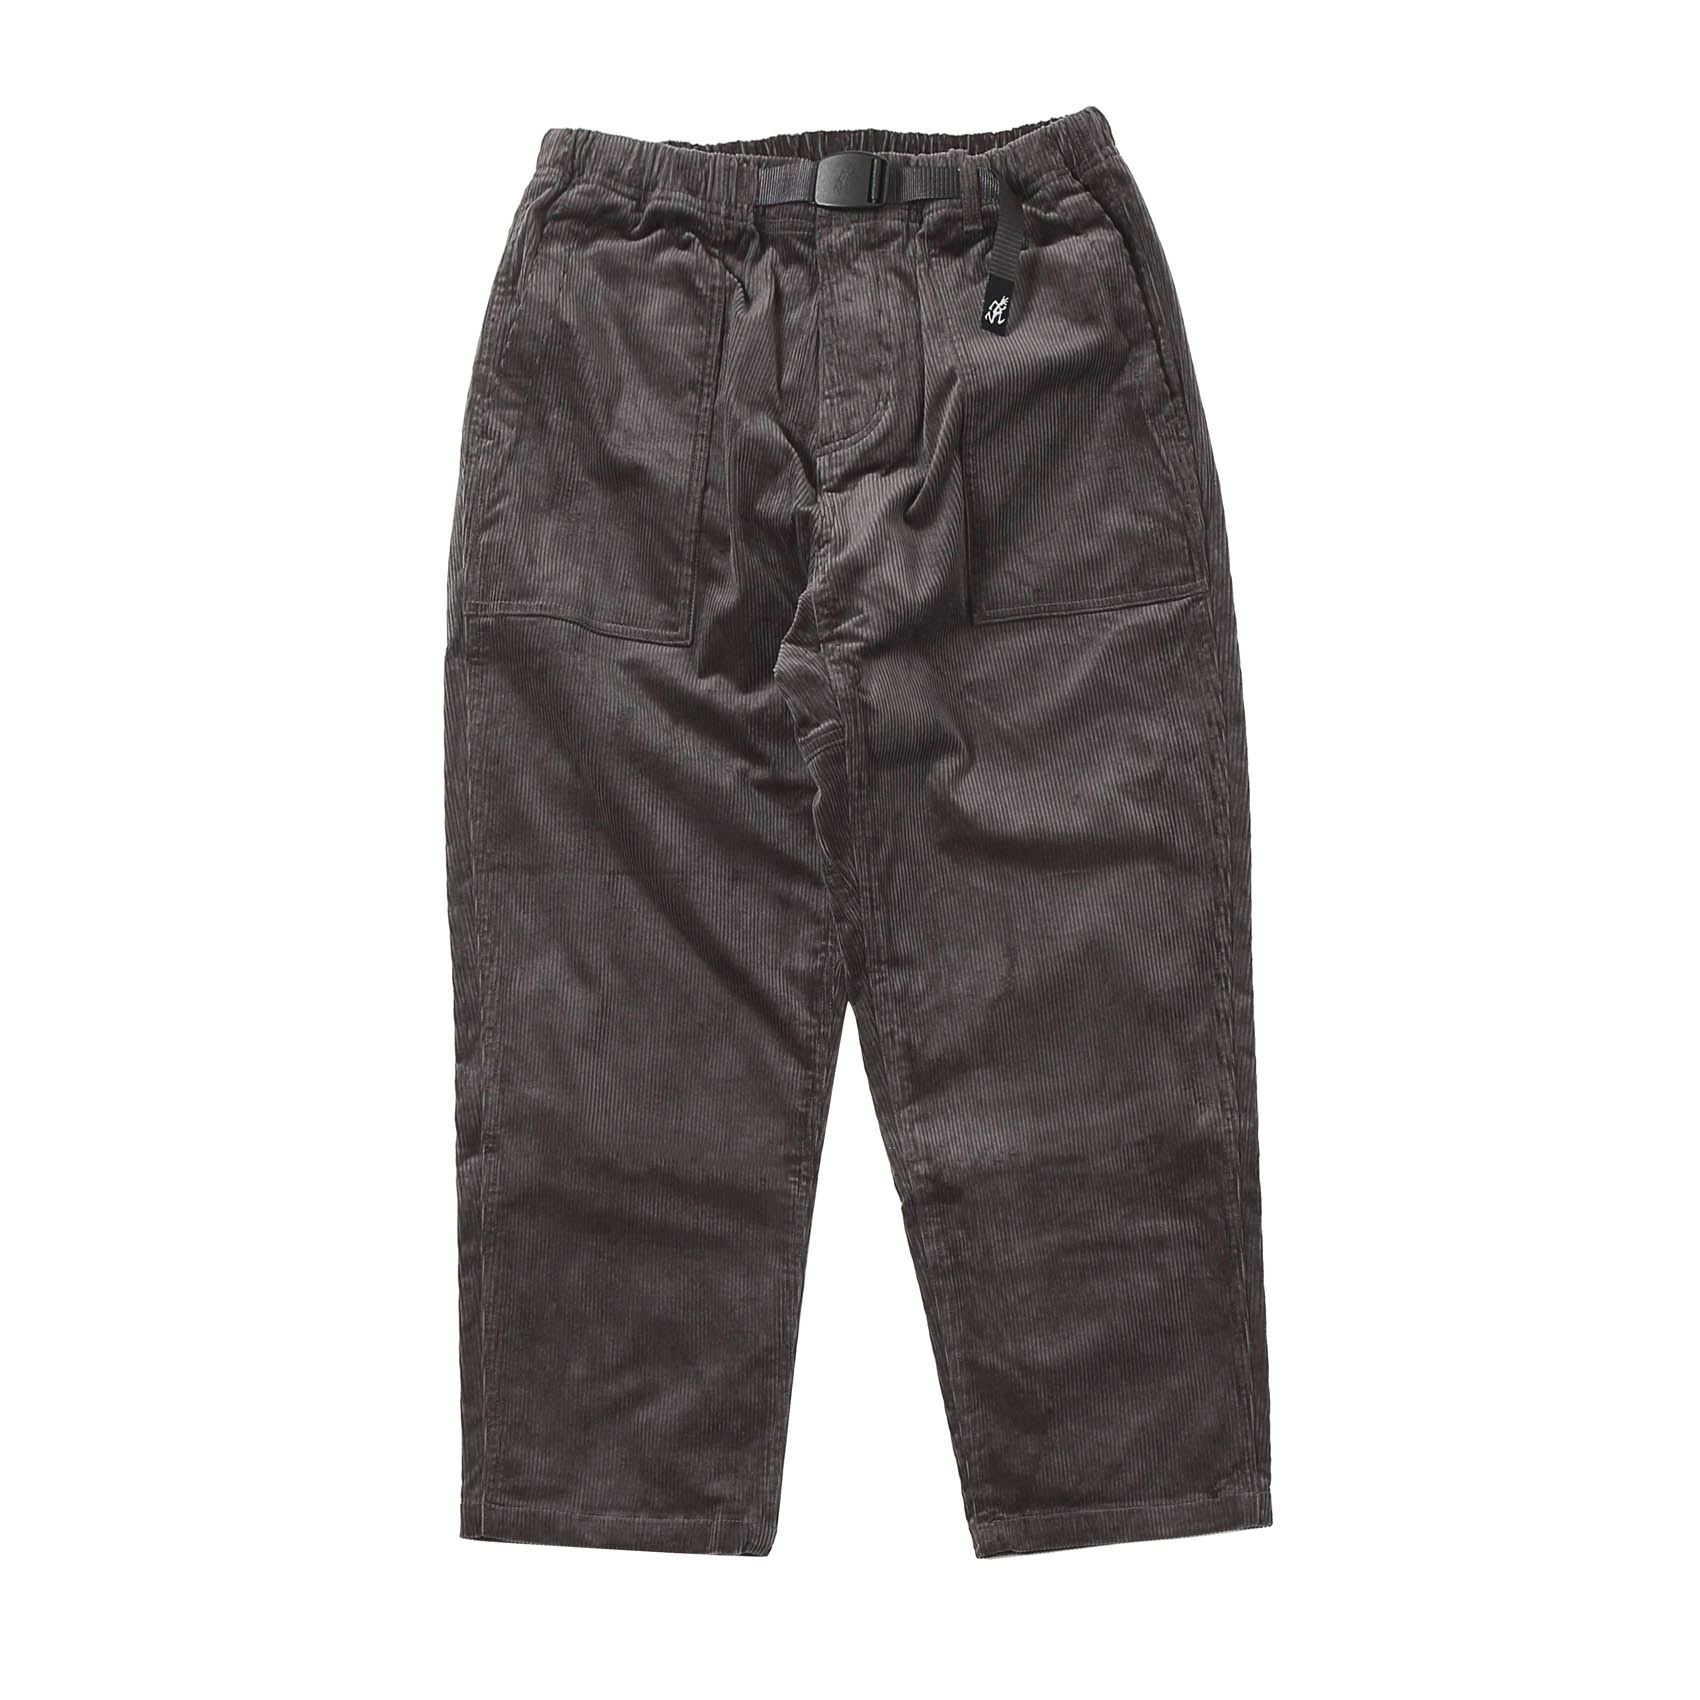 CORDUROY LOOSE TAPERED PANTS - CHARCOAL